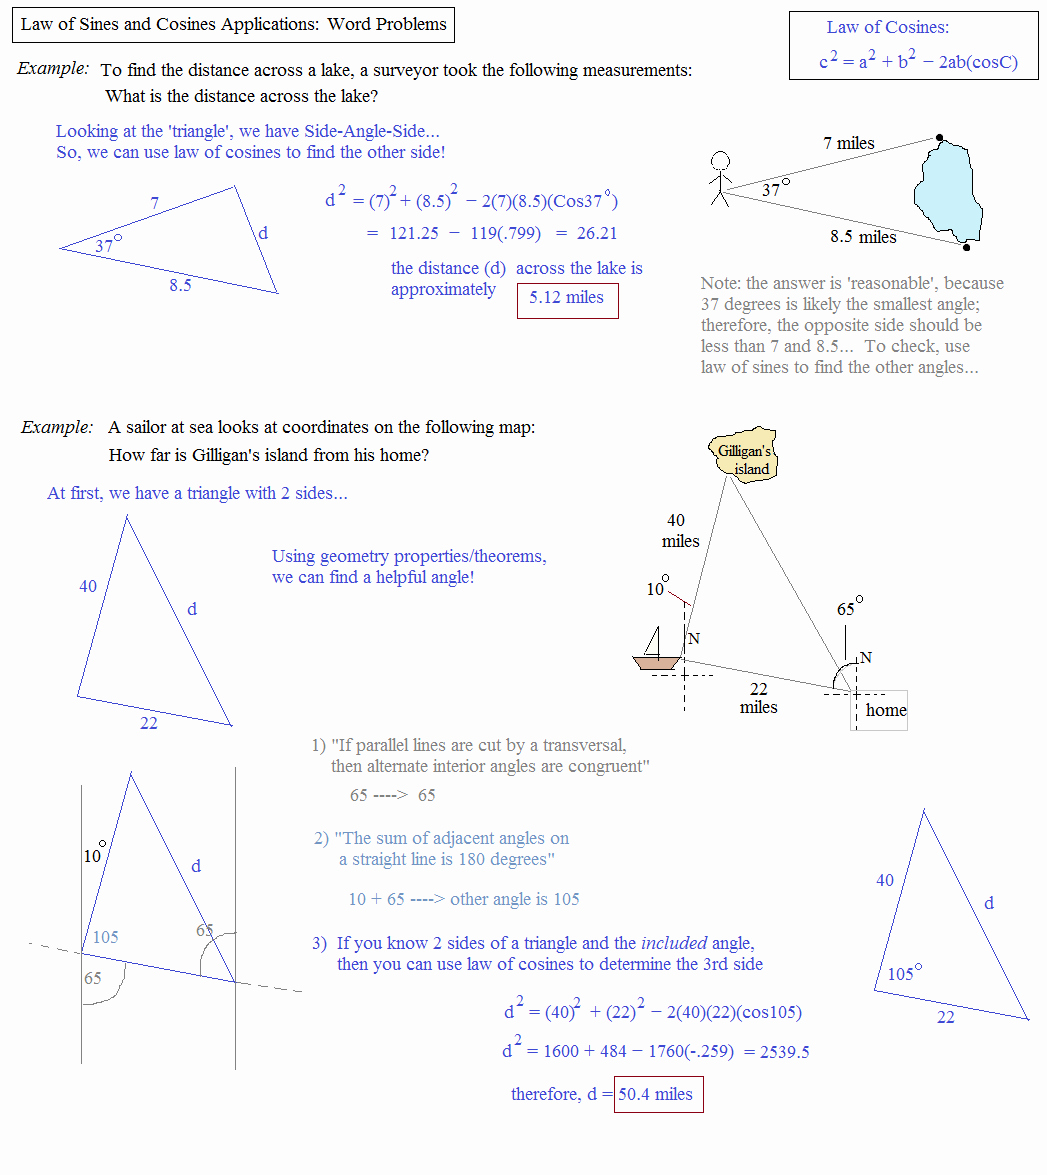 Trigonometry Word Problems Worksheet Answers Beautiful Math Plane Law Of Sines and Cosines & area Of Triangles